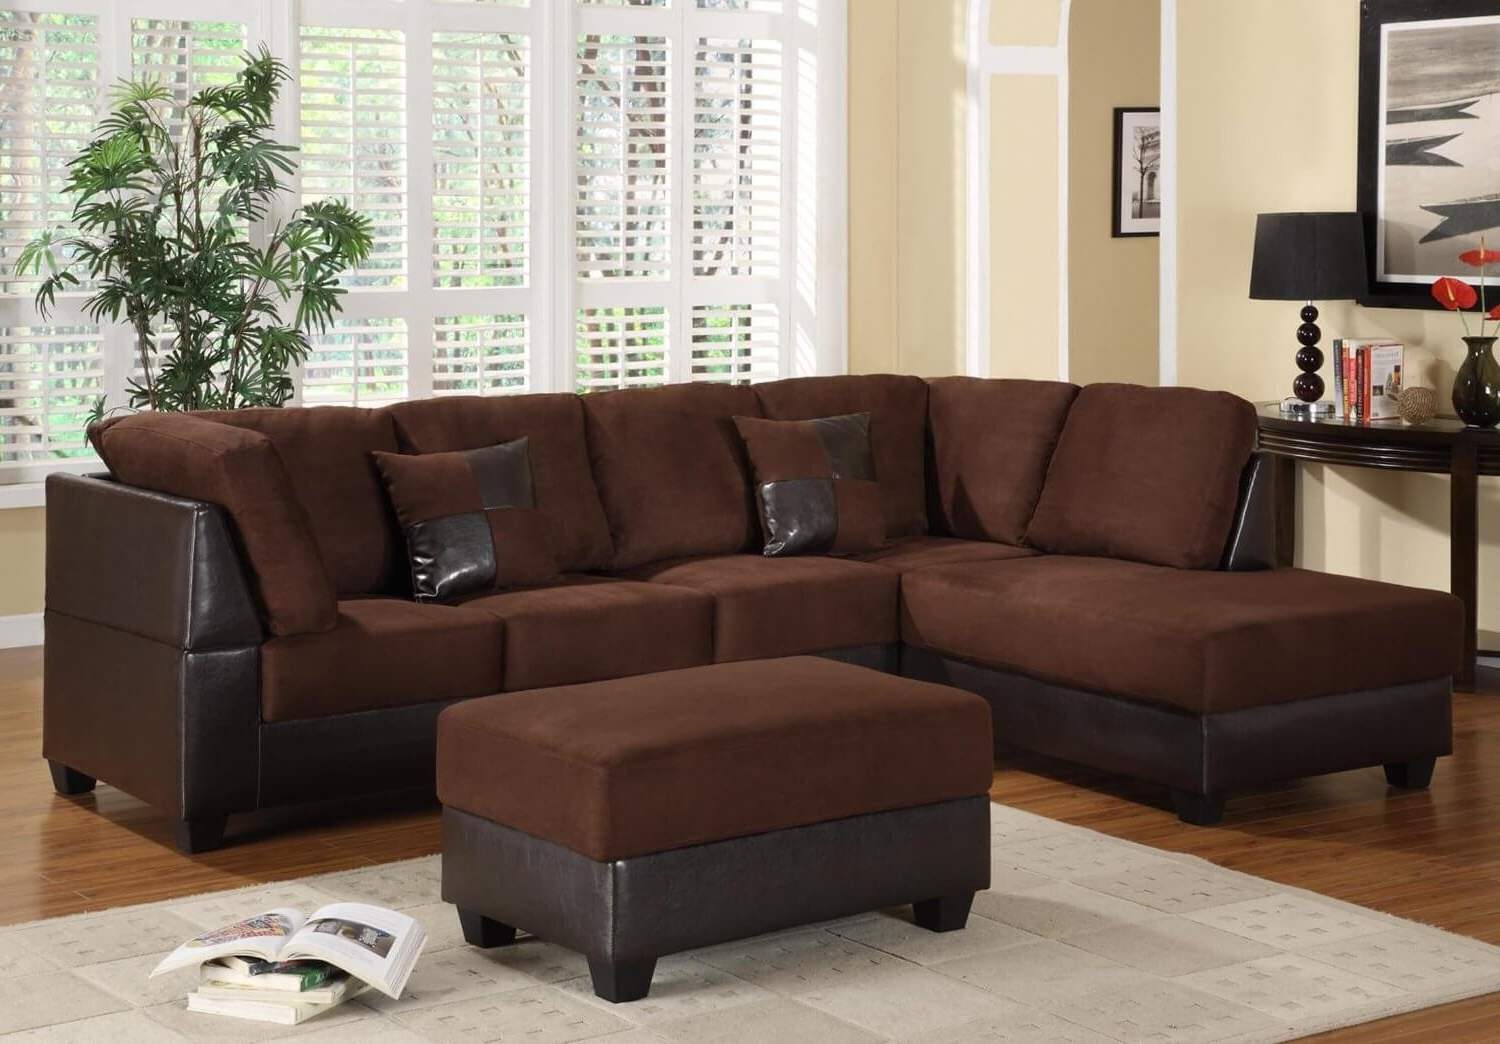 Latest On Sale Sectional Sofas With 40 Cheap Sectional Sofas Under $500 For (View 16 of 20)